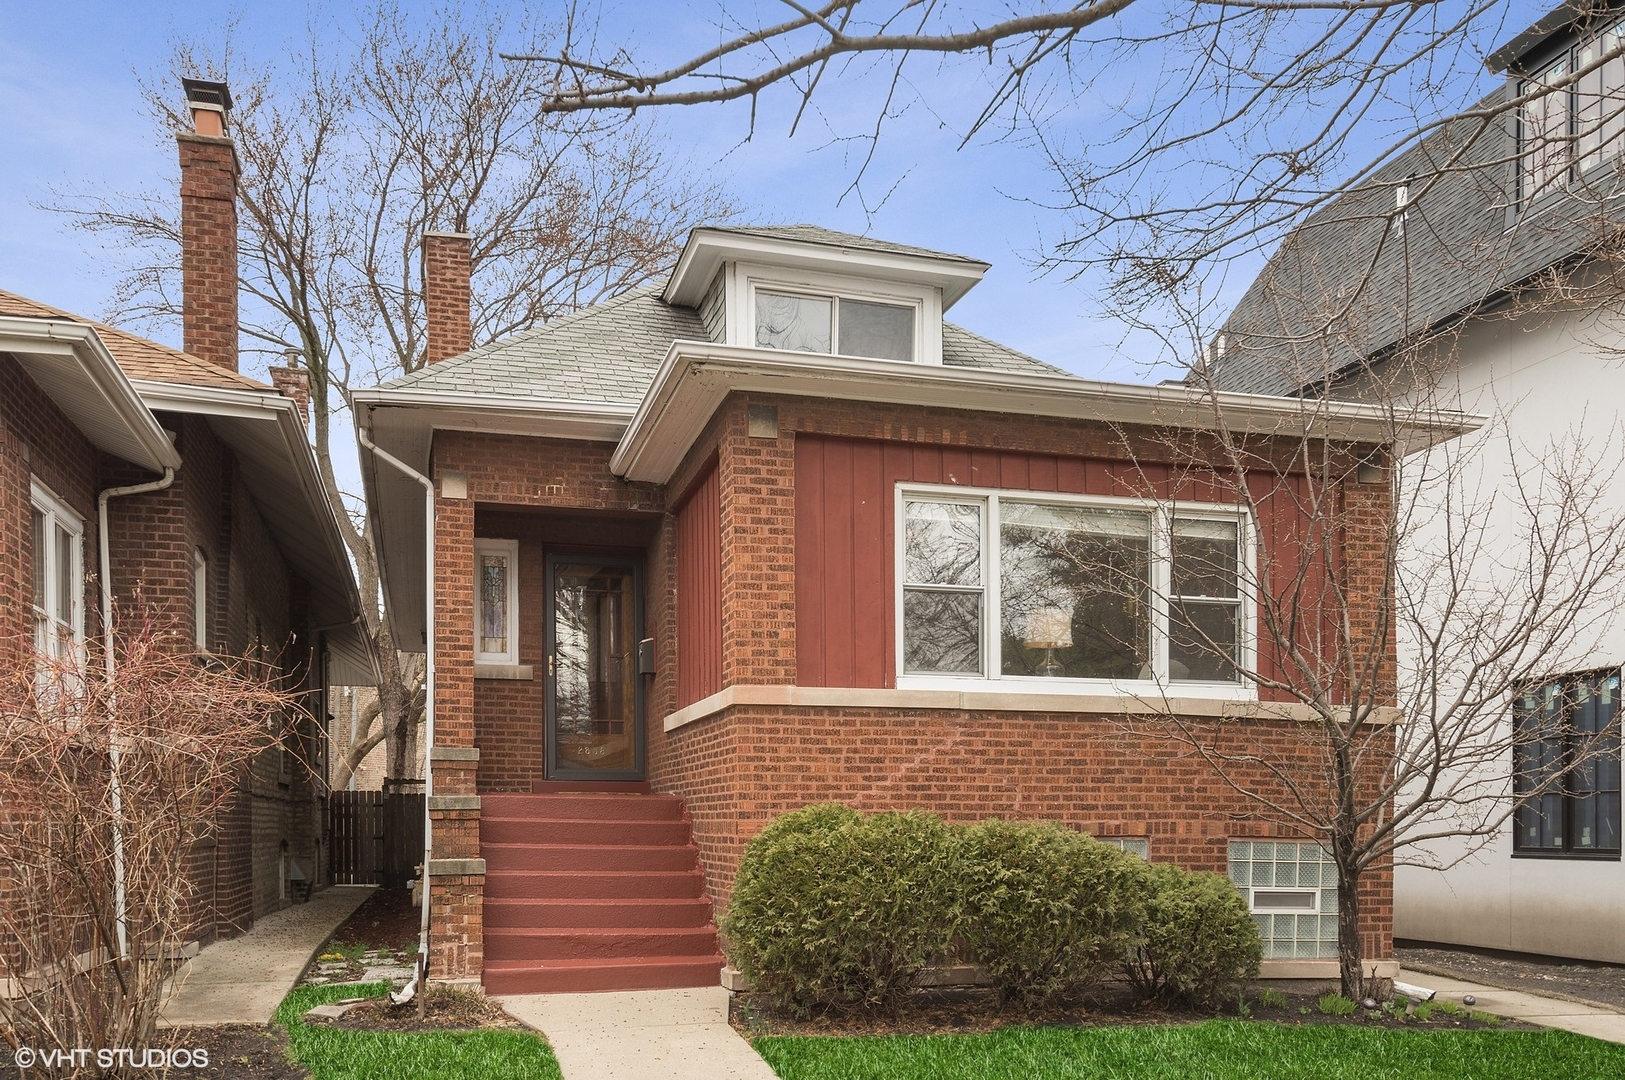 2858 Giddings ,Chicago, Illinois 60625